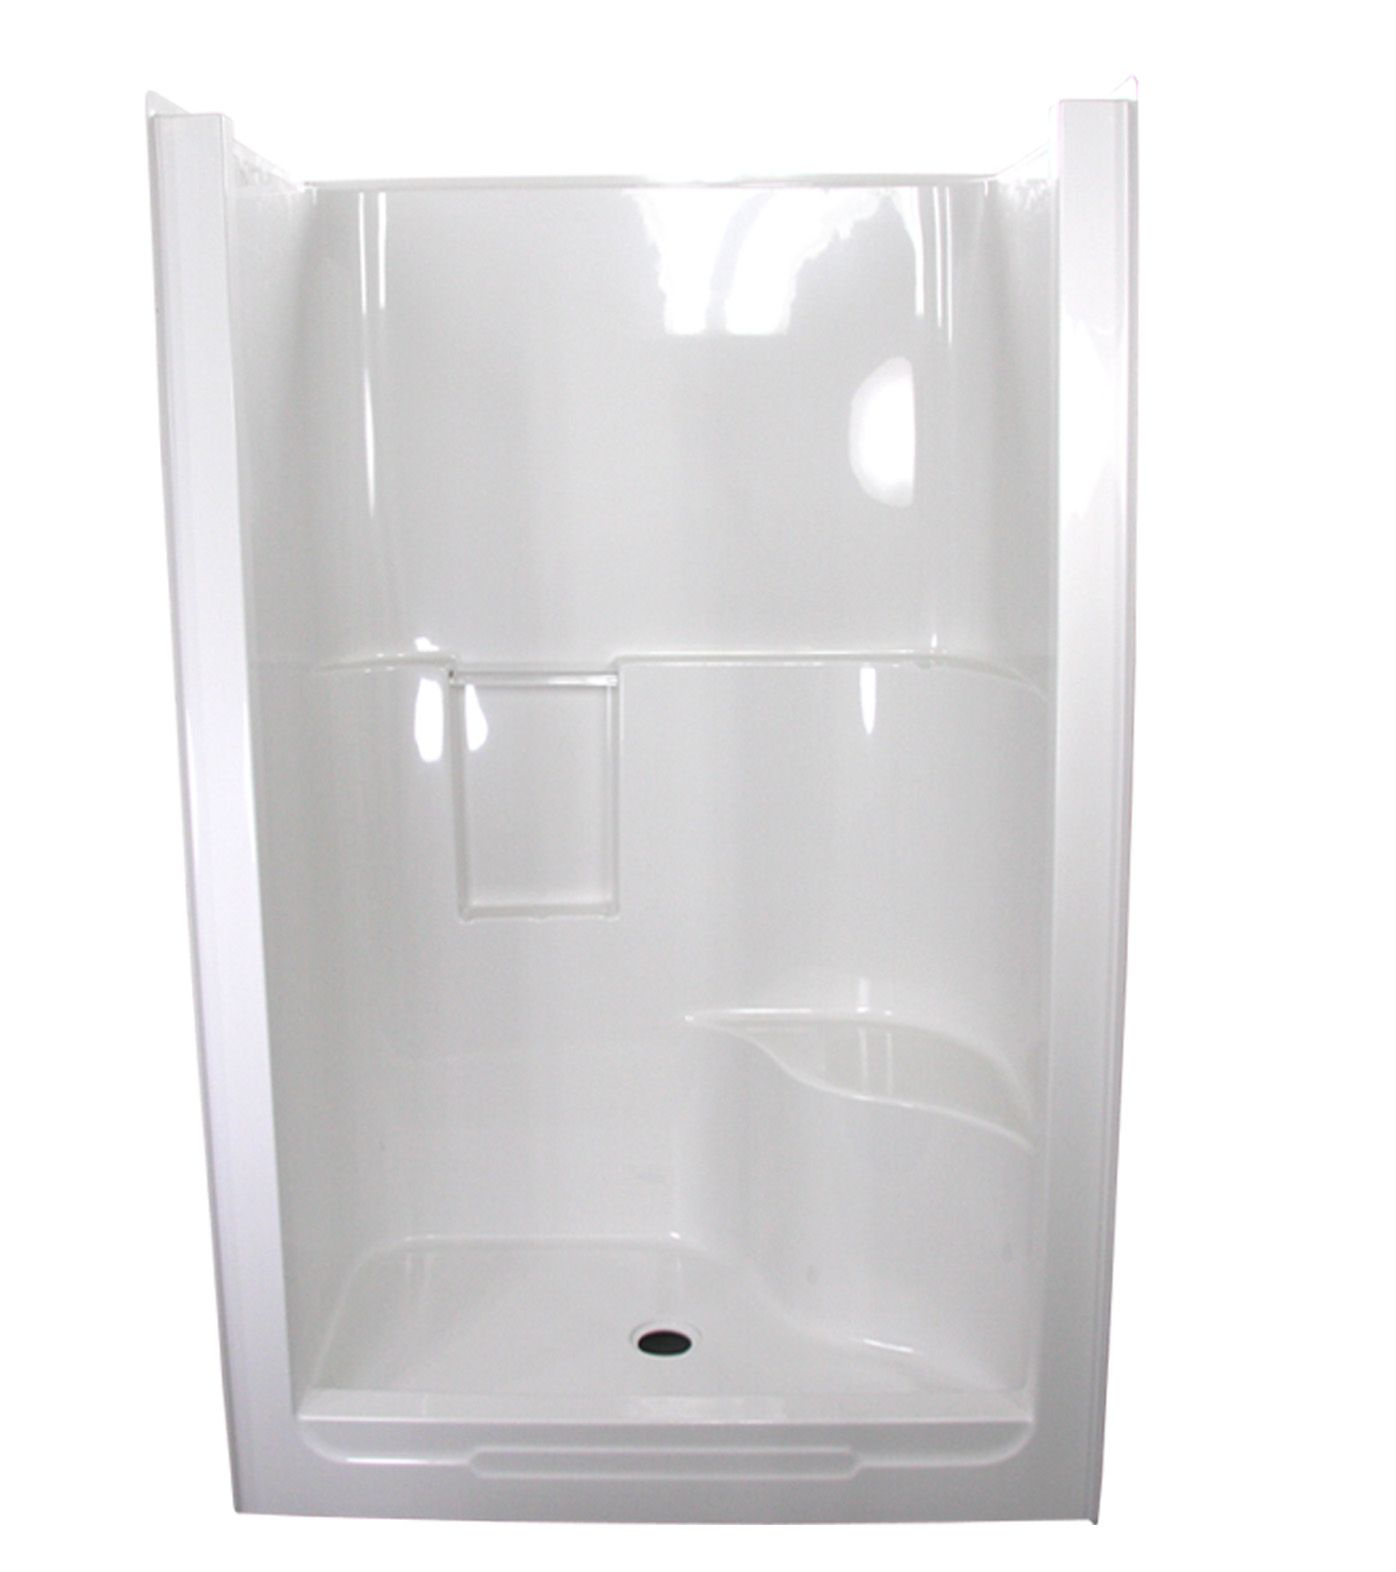 One Piece Fiberglass Shower Stalls Bing Images